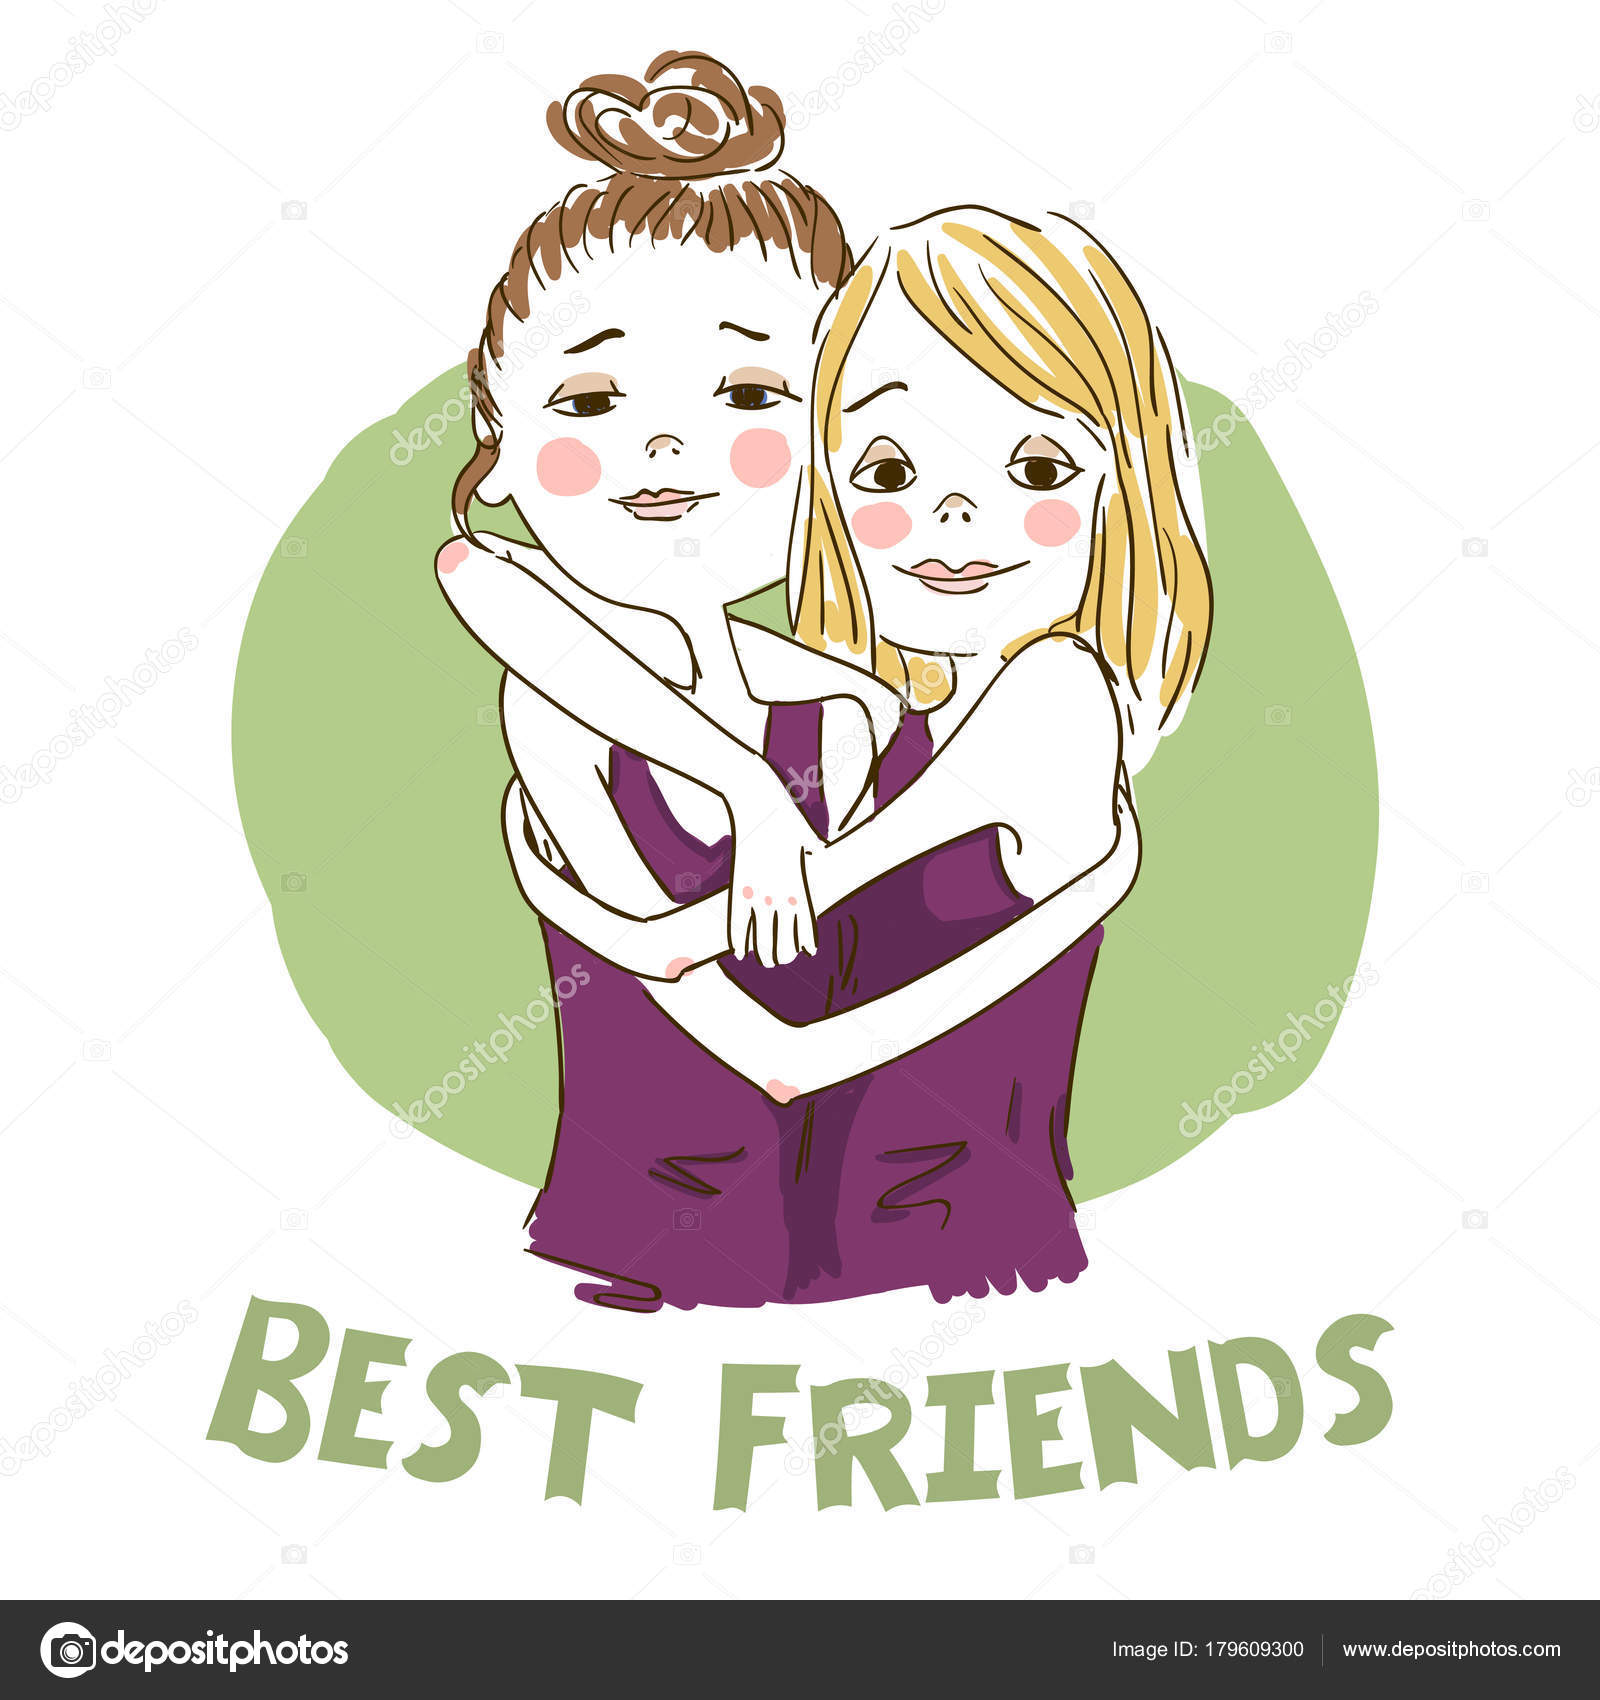 Two Cartoon Girls Best Friends Stock Vector C Salvadorova 179609300